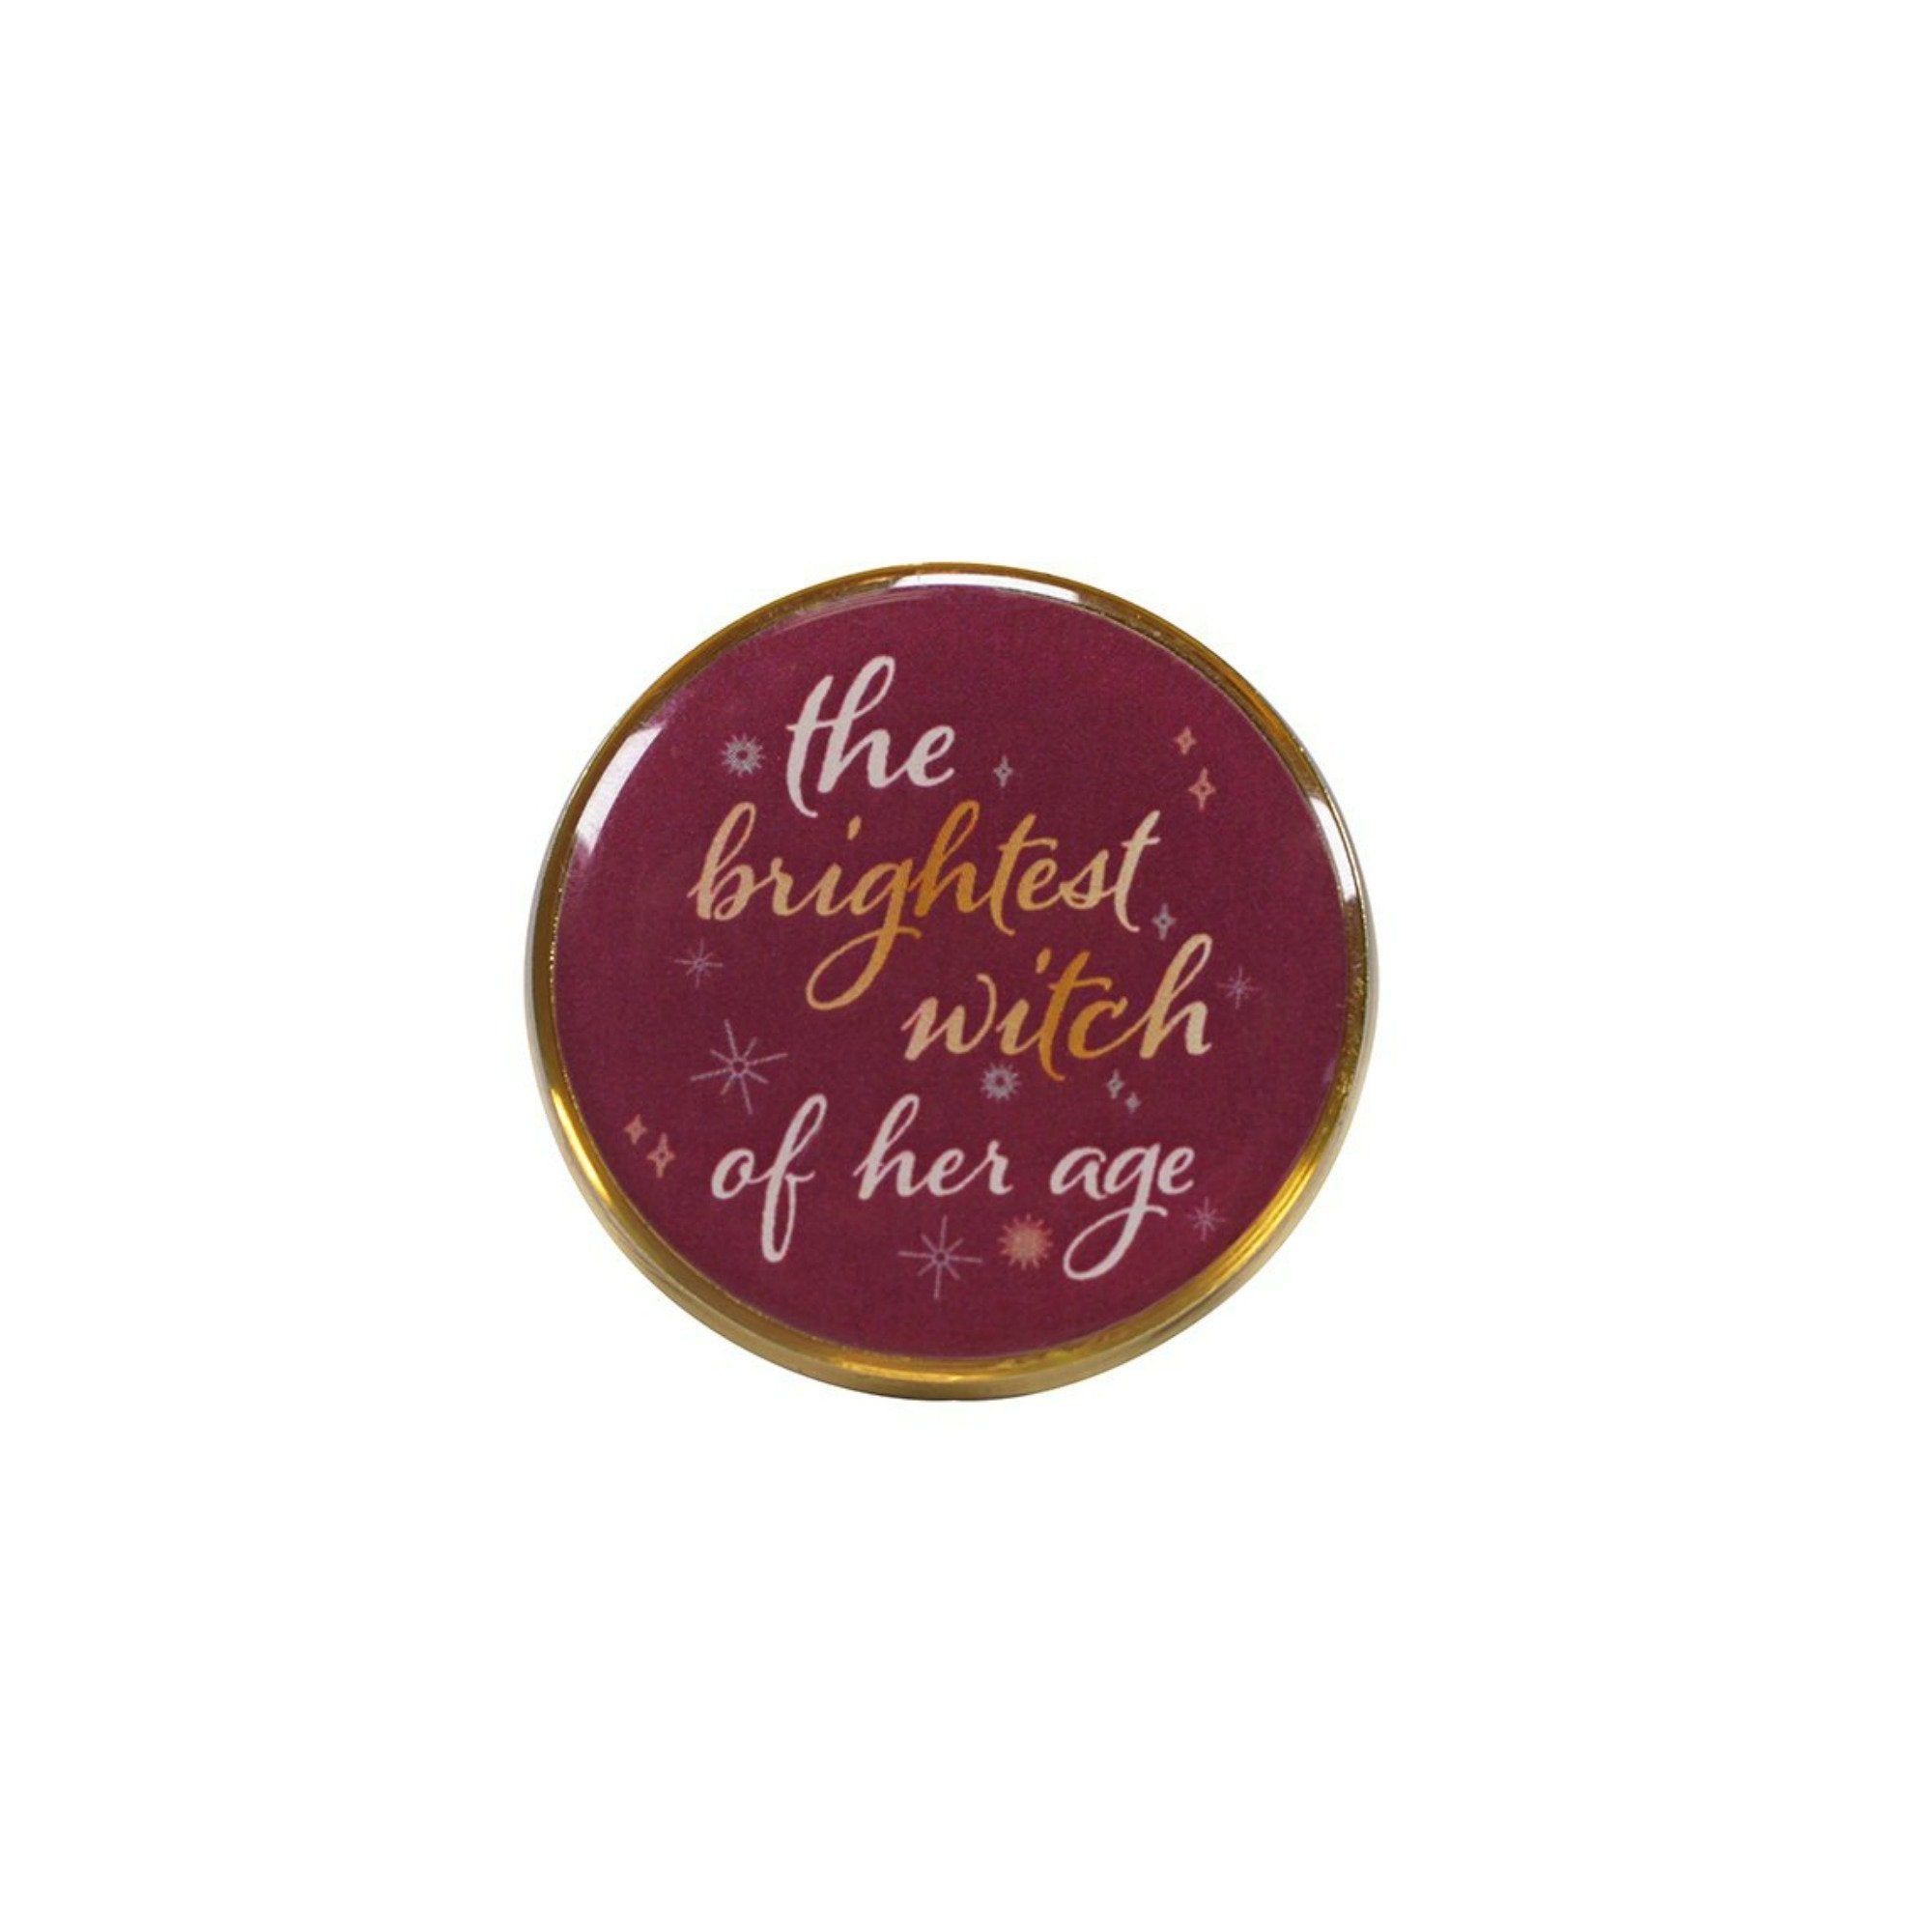 Harry Potter The Brightest Witch Of Her Age Lapel Pin Badge - Minimum Mouse